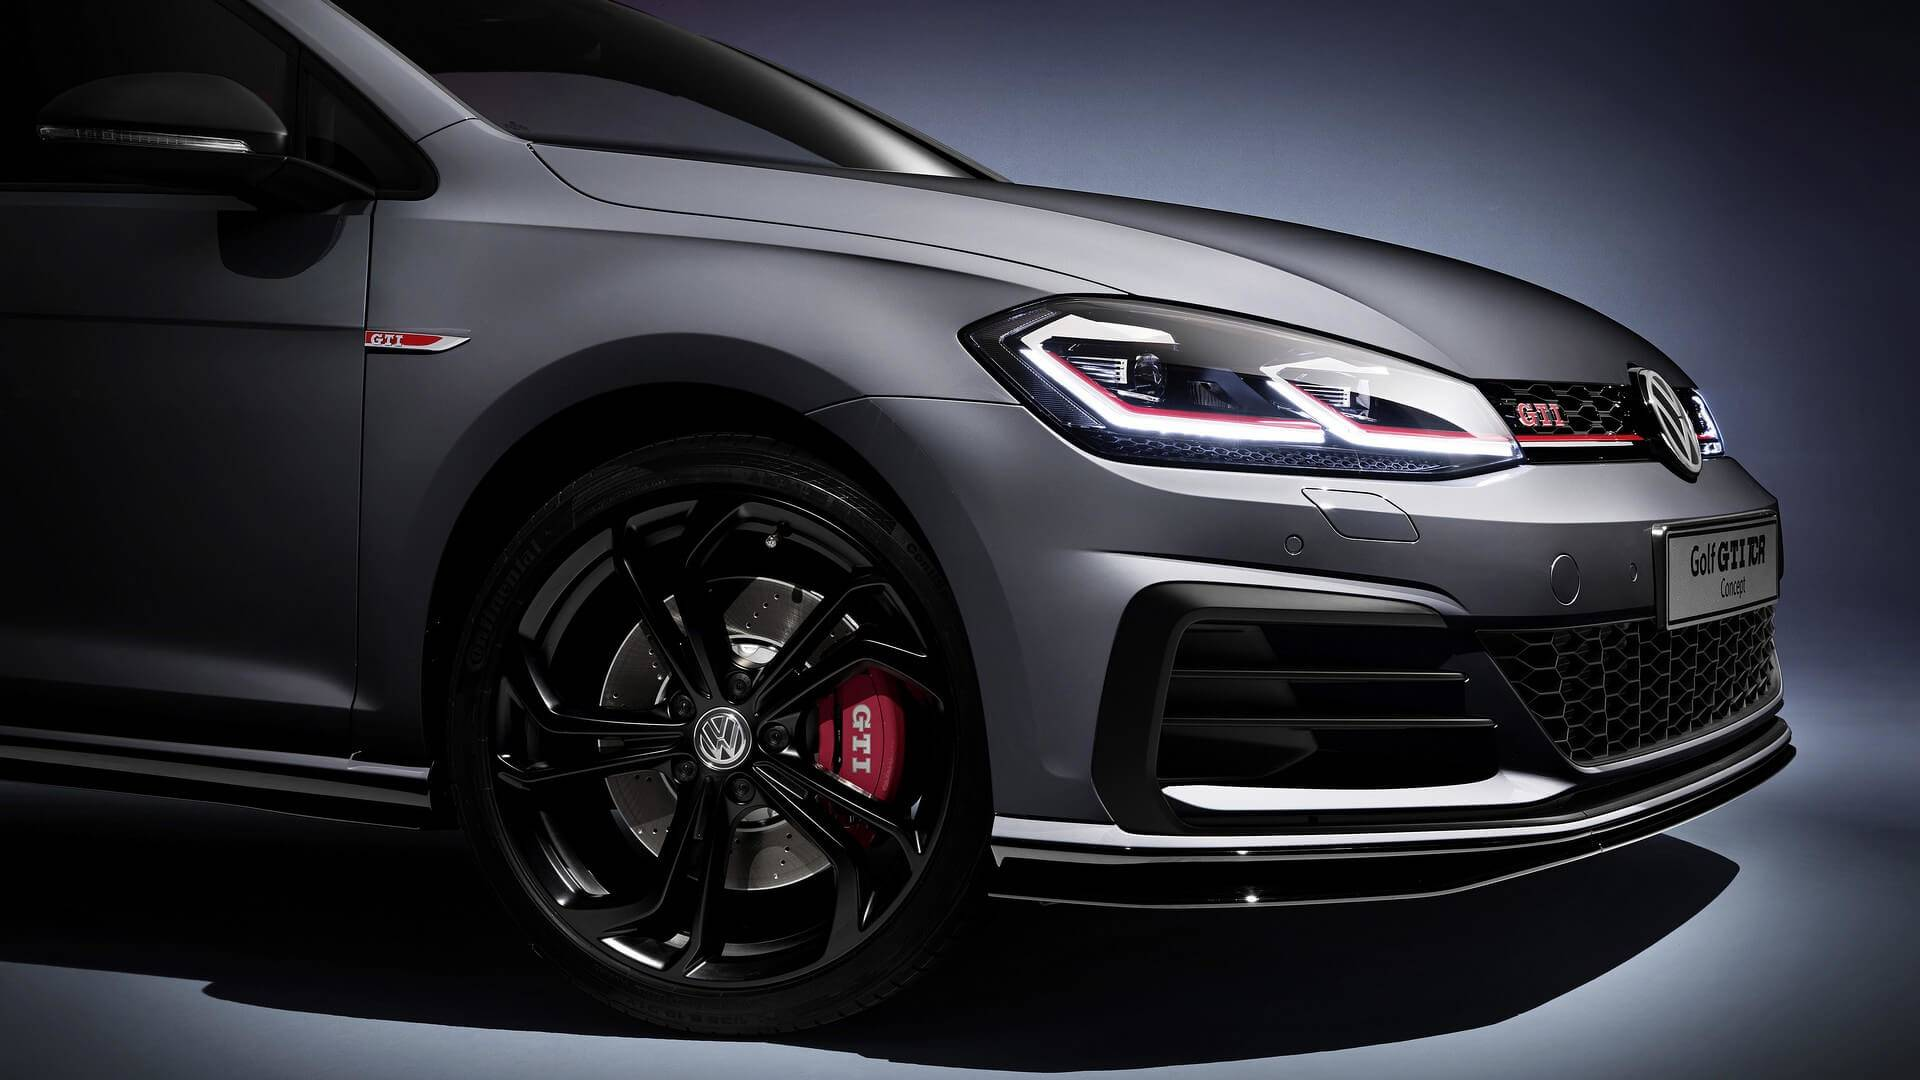 What Does Gti Stand For >> Vw Golf Gti Tcr Concept Unveiled As The Fastest Golf Gti Ever